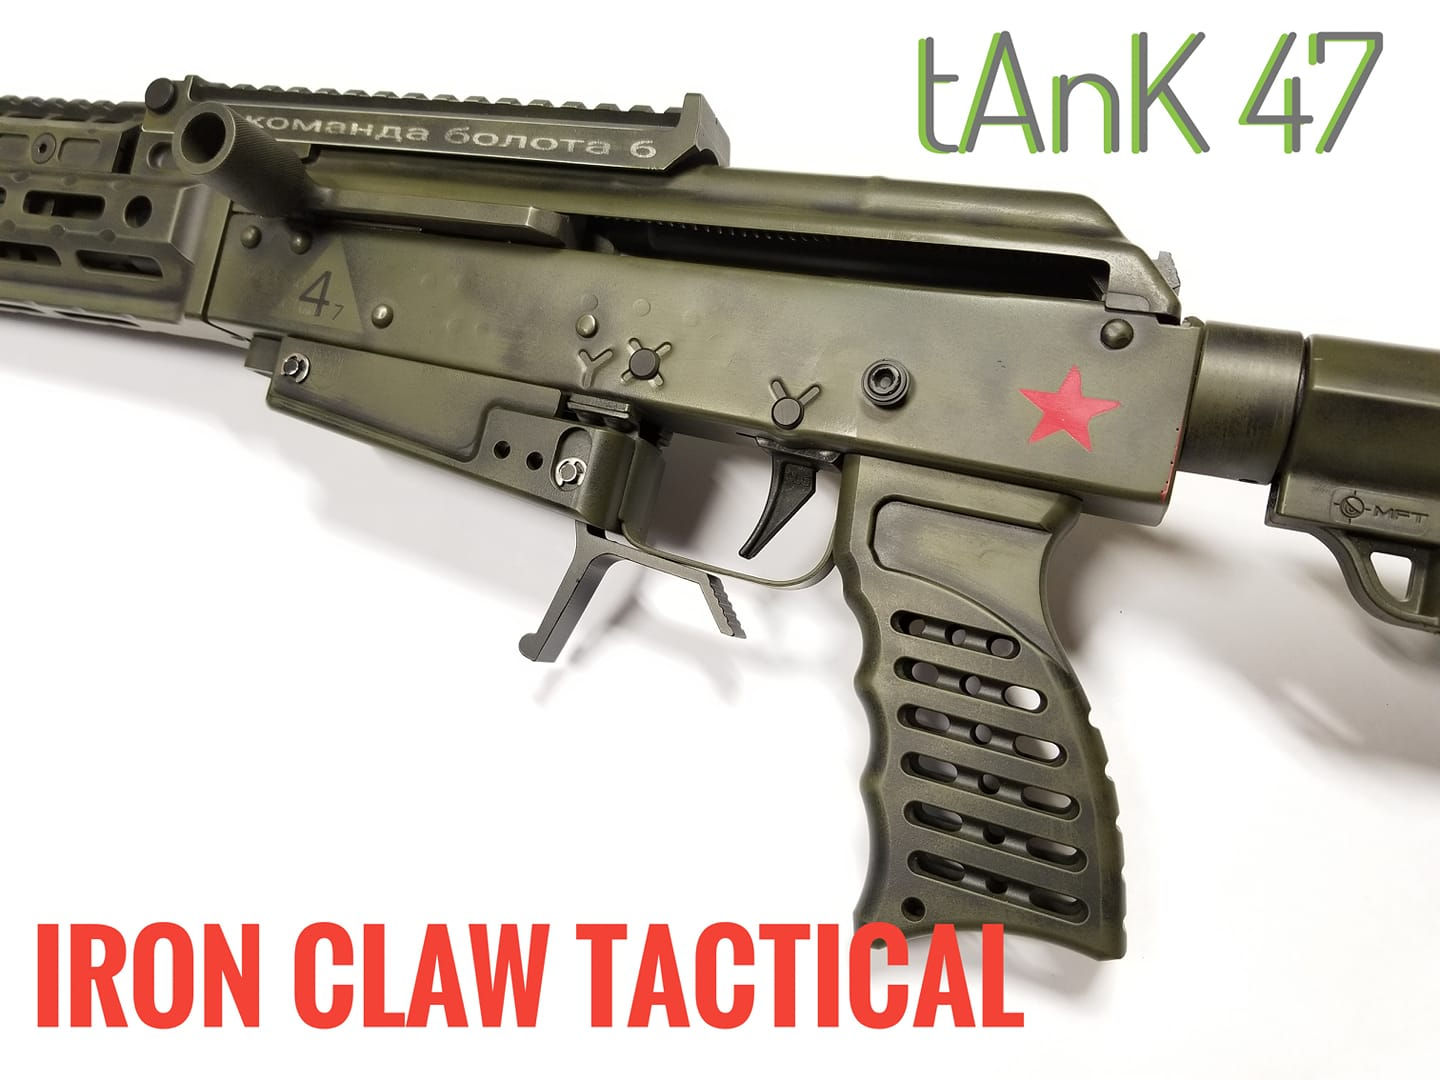 Iron Claw Tactical tAnK 47 Rifle (6)